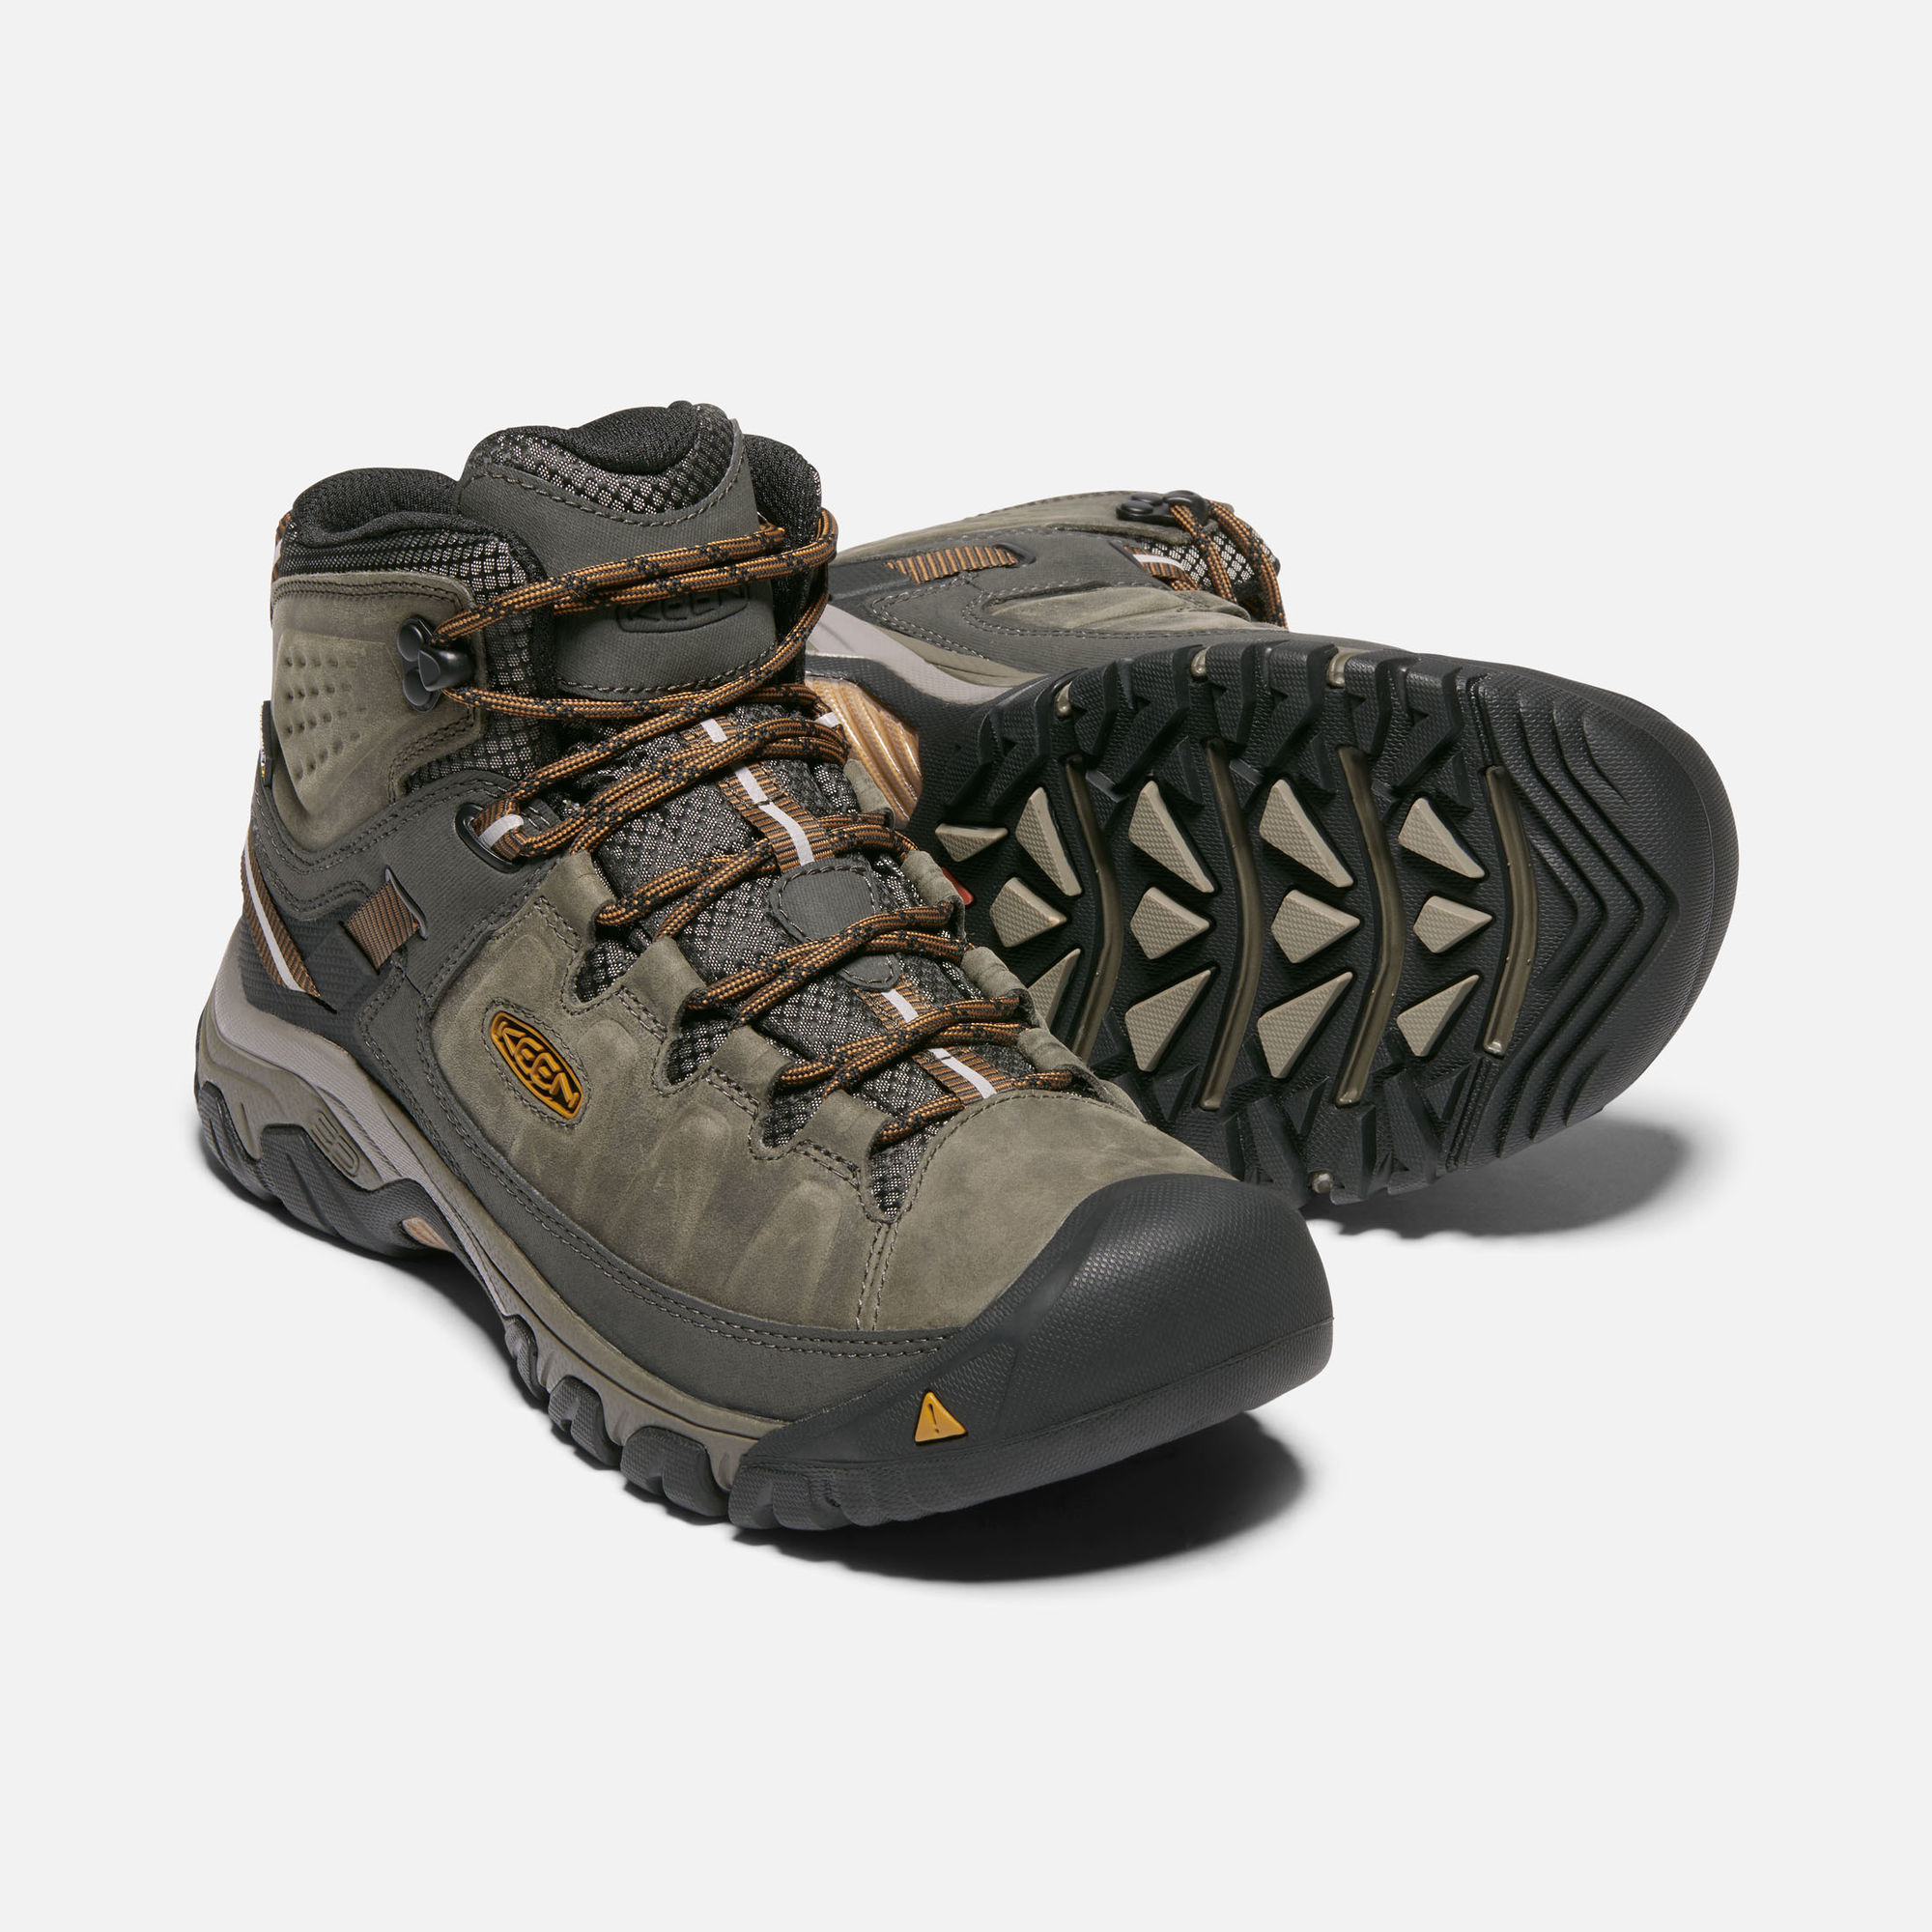 The Keen Targhee III Mid is our pick for wide width hiking boot.